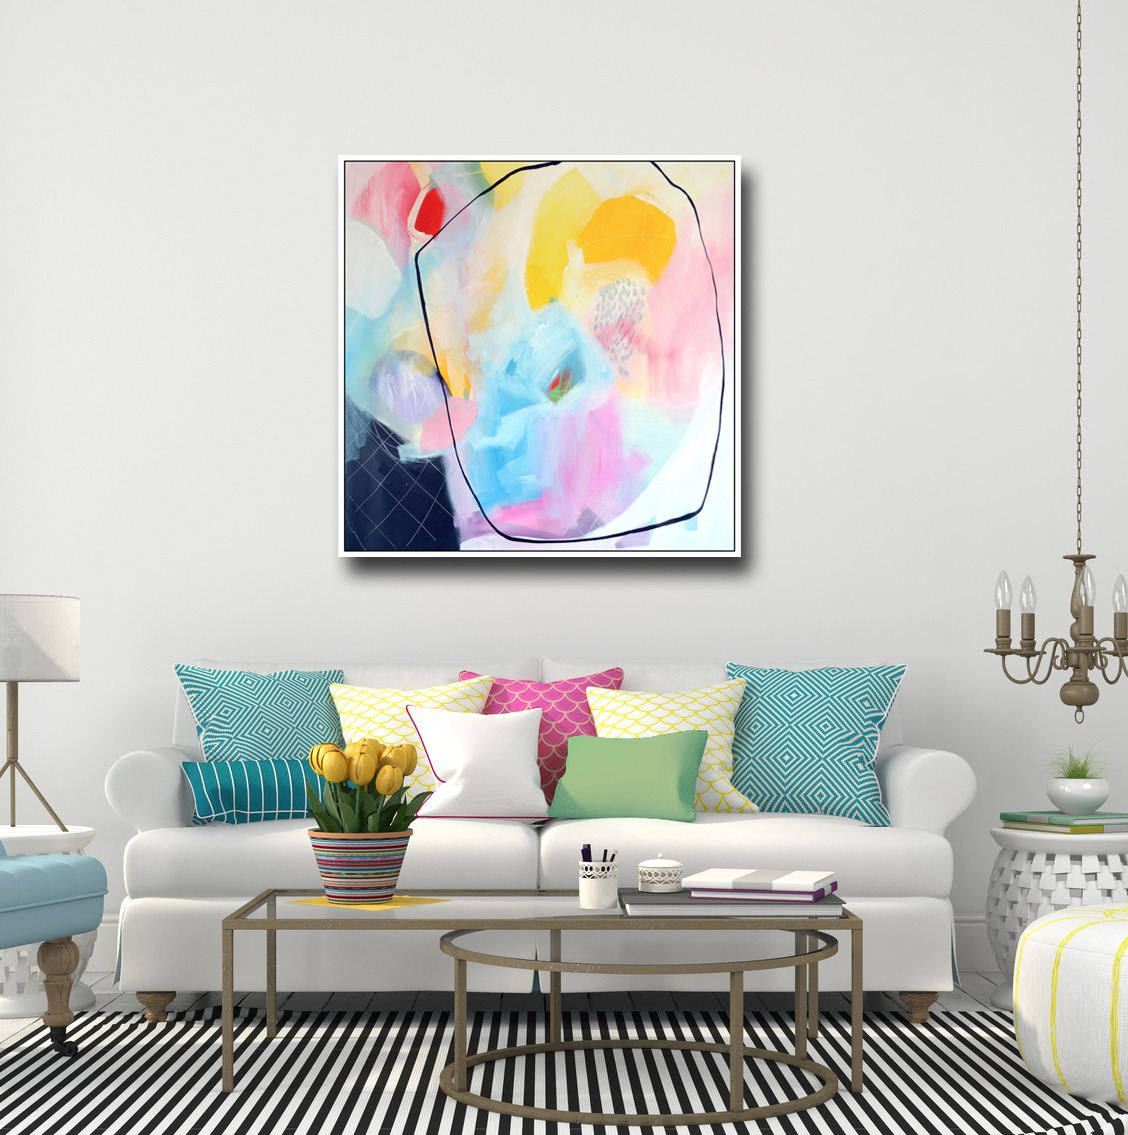 Large abstract canvas art wall art pink white green and blue abstract print from painting large giclee print modern artwork expressive abstract canvas